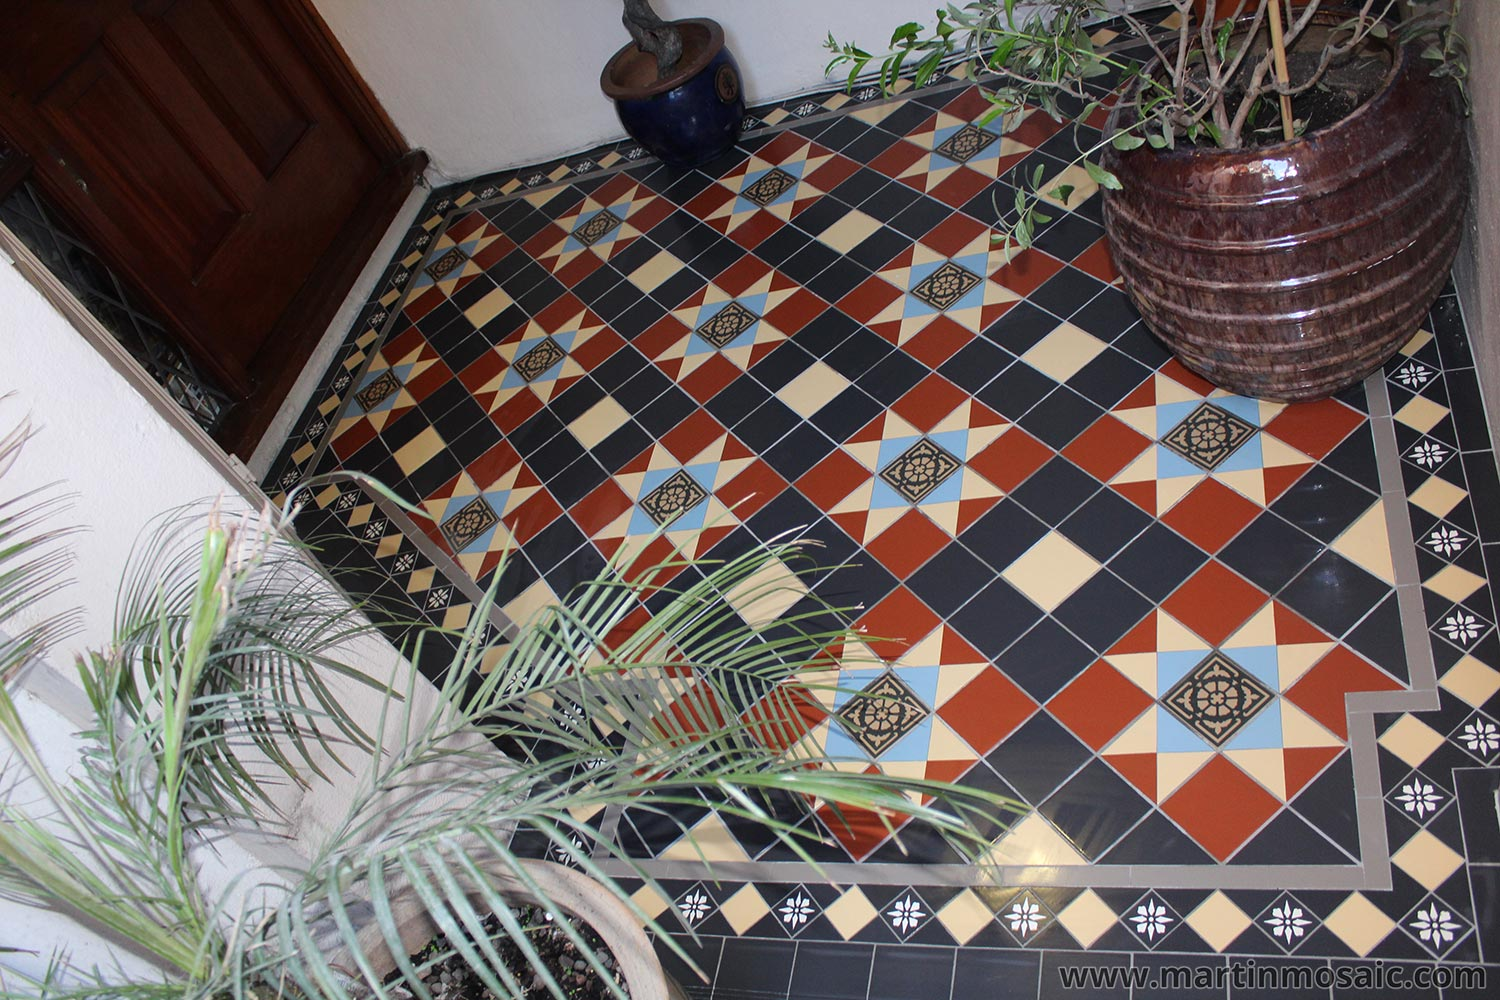 Gallery Martin Mosaic Ltd Victorian Floor Tiles In Wimbledon